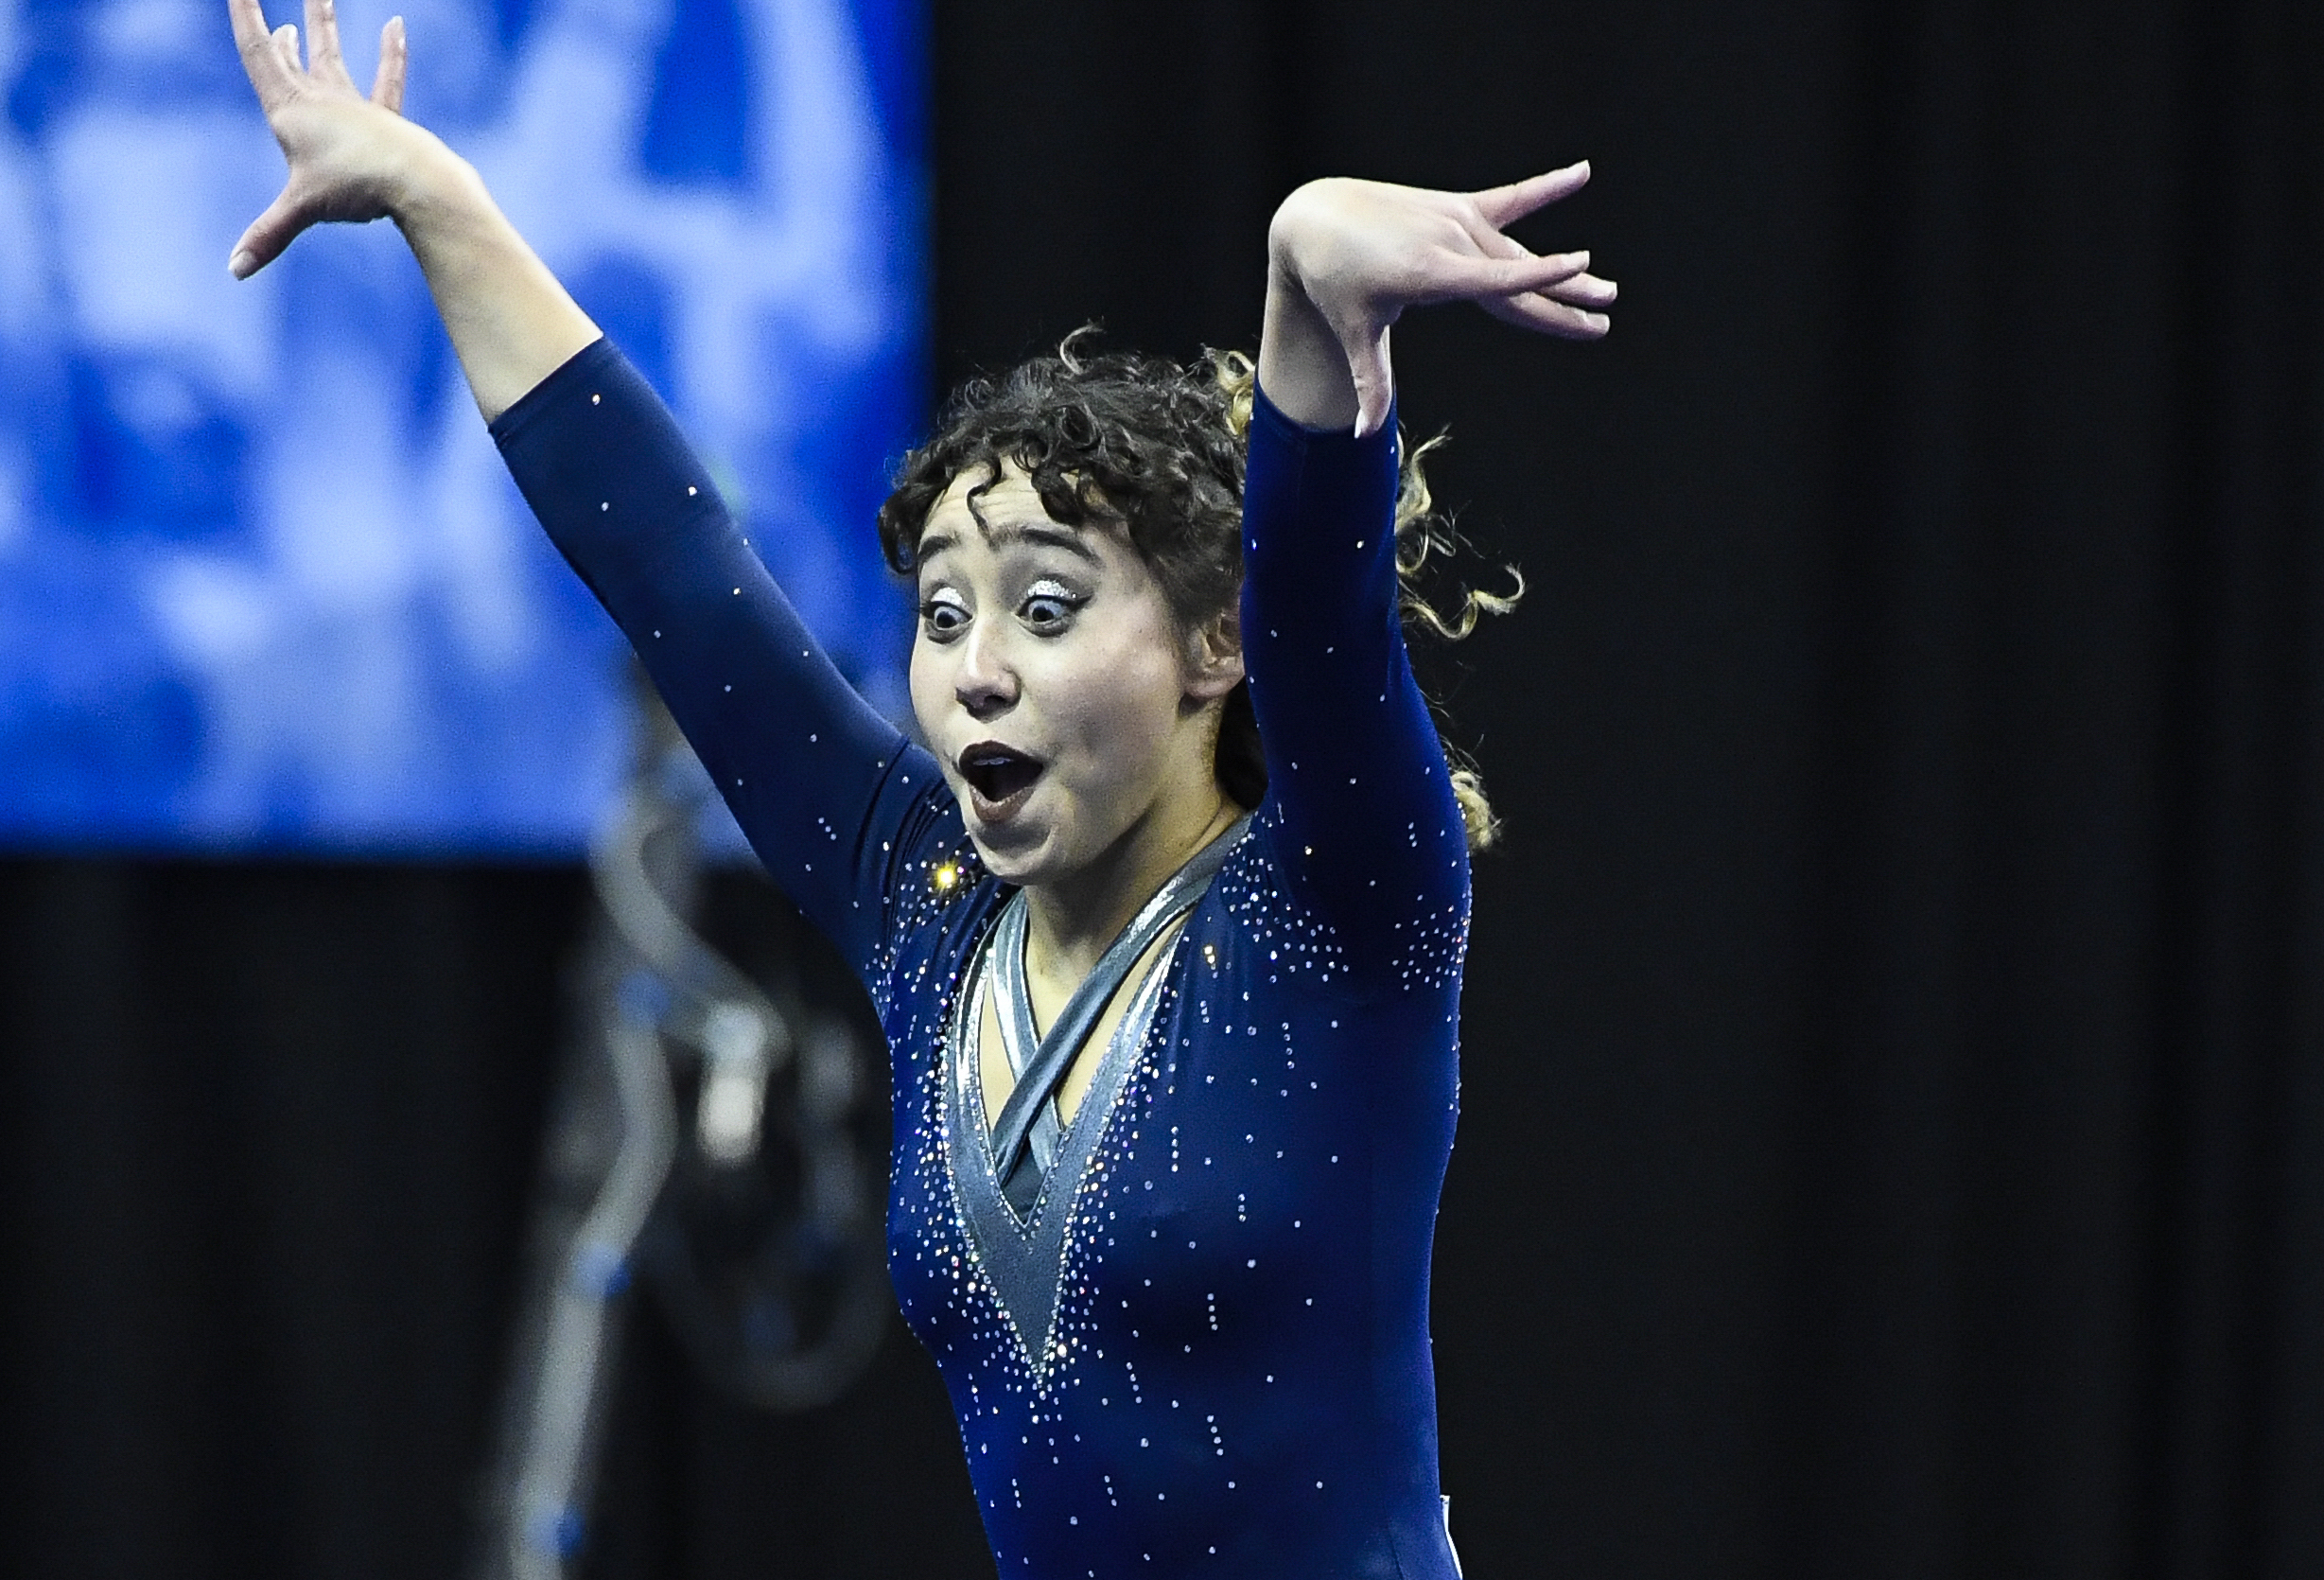 Katelyn Ohashi Nationality, Ethnicity, Race, and Religion